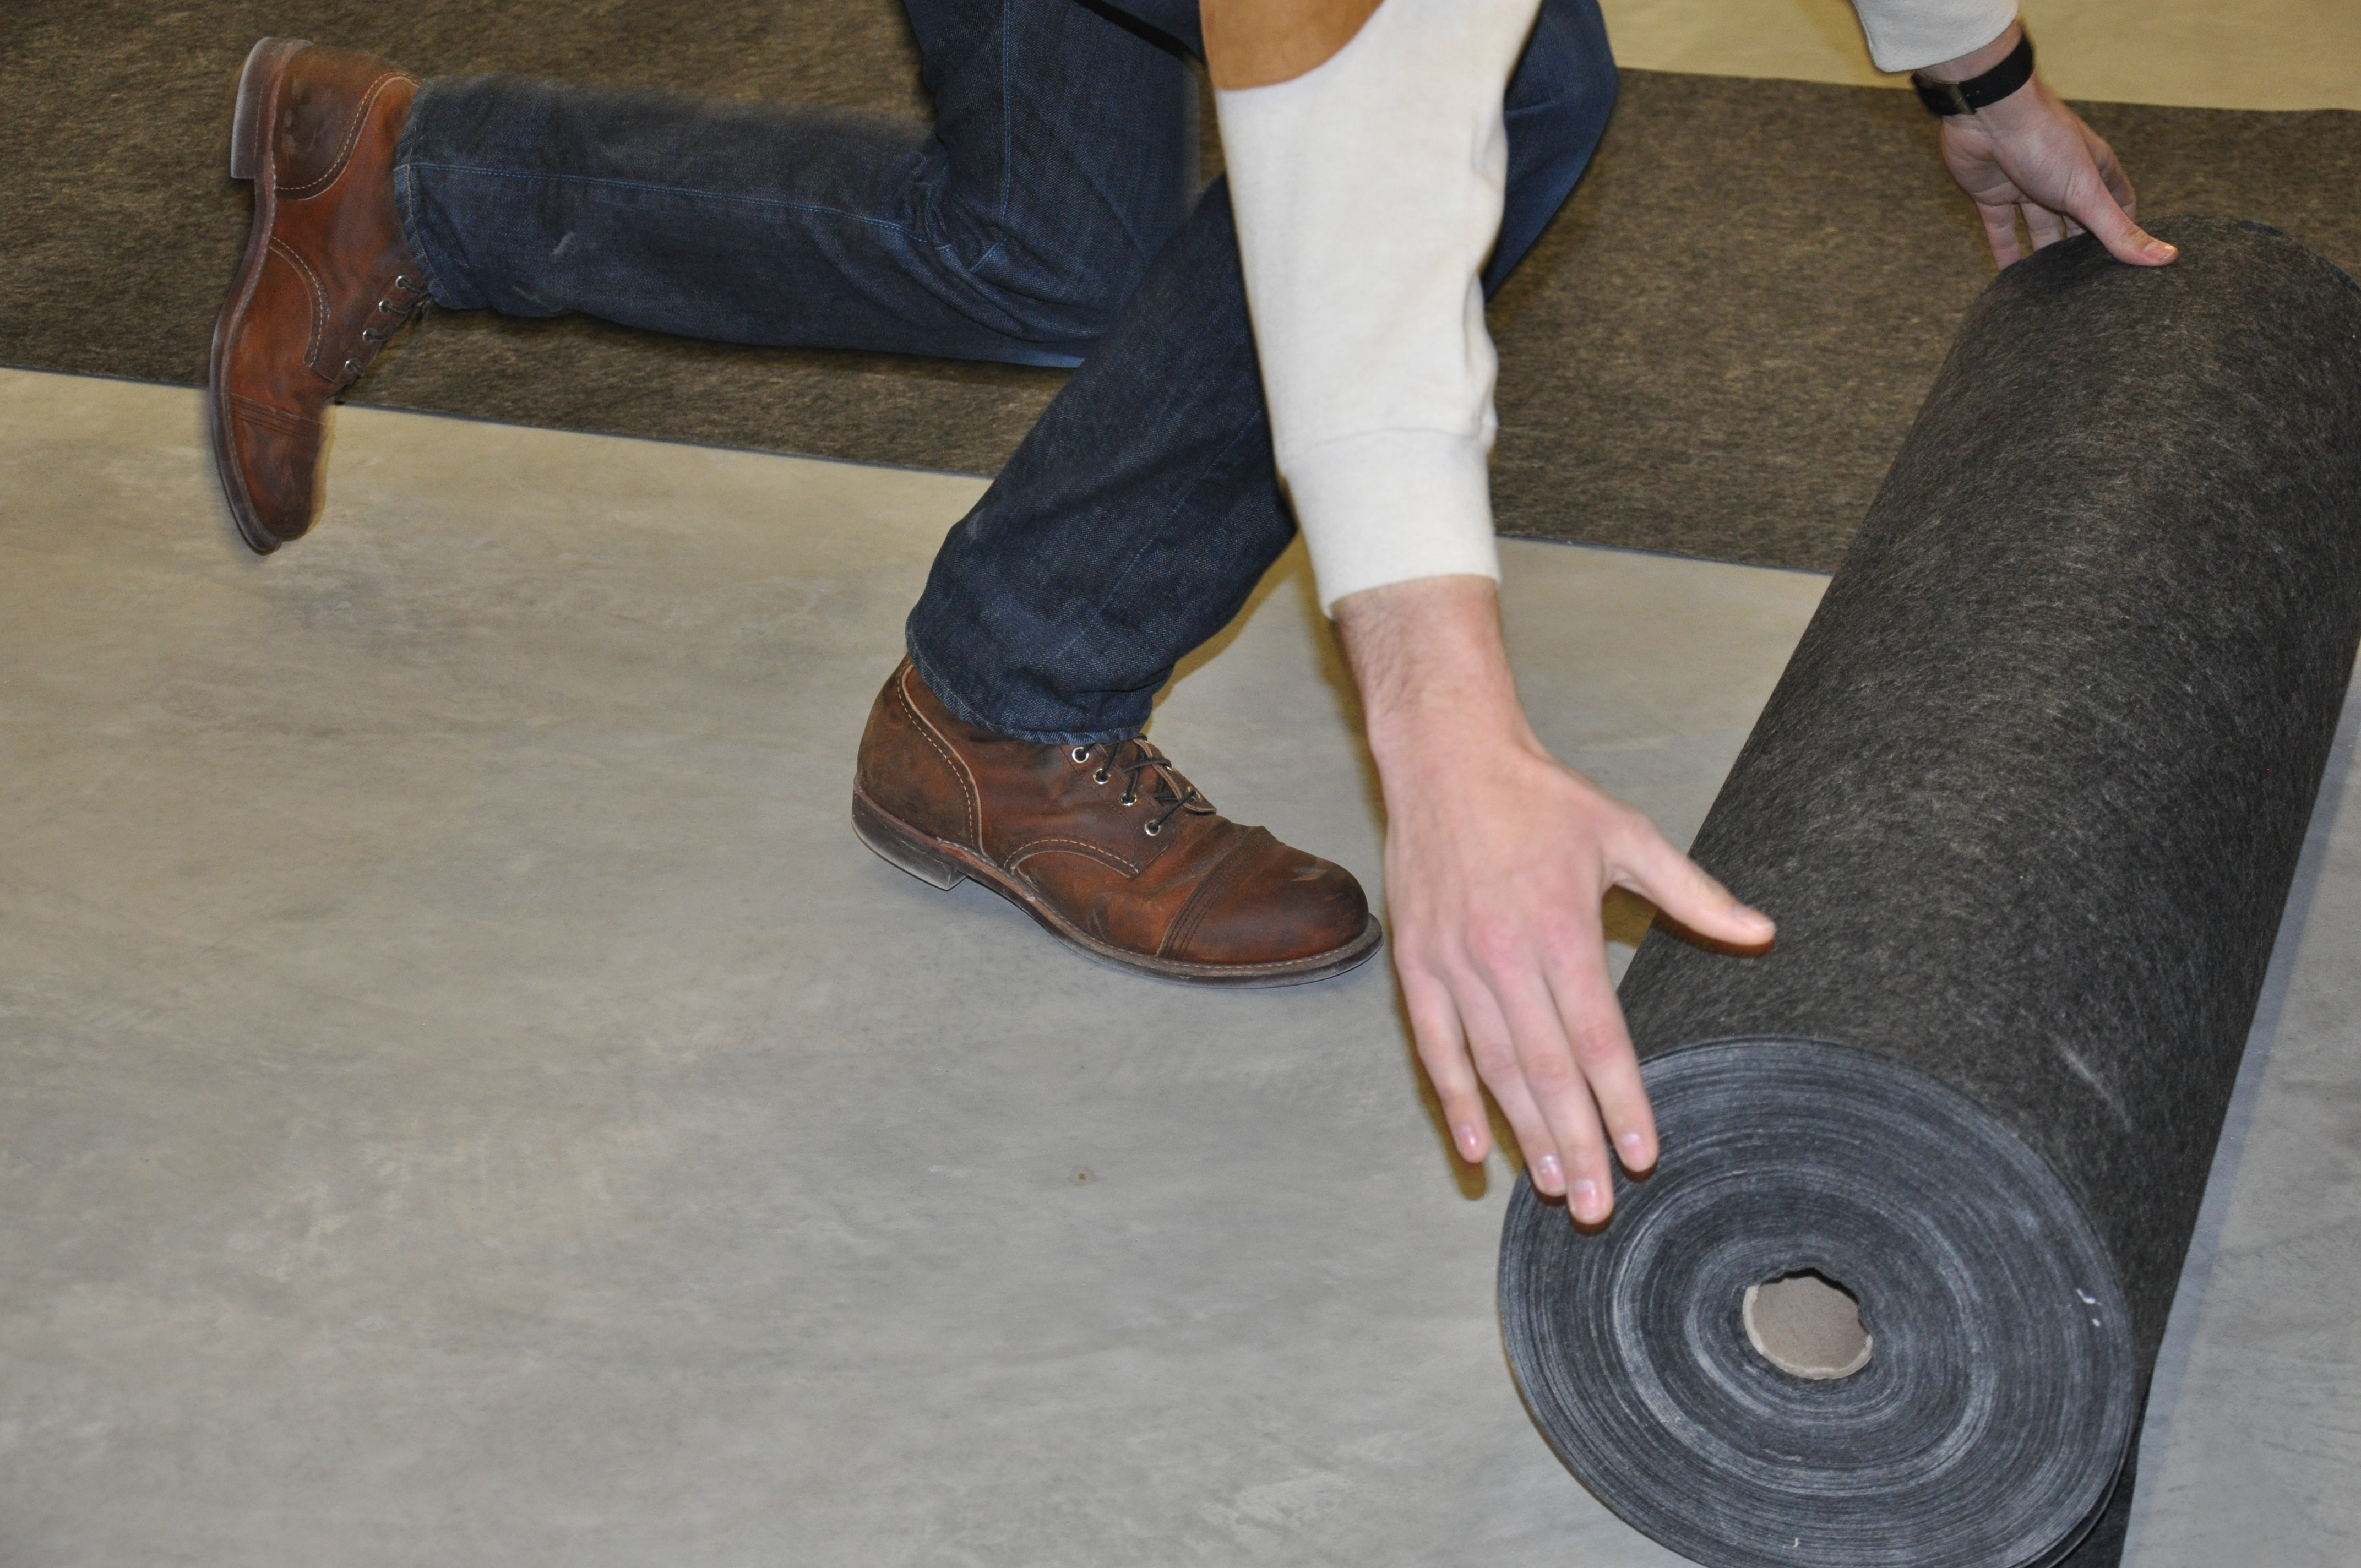 Acousti-Mat sound mat also offered as a green product